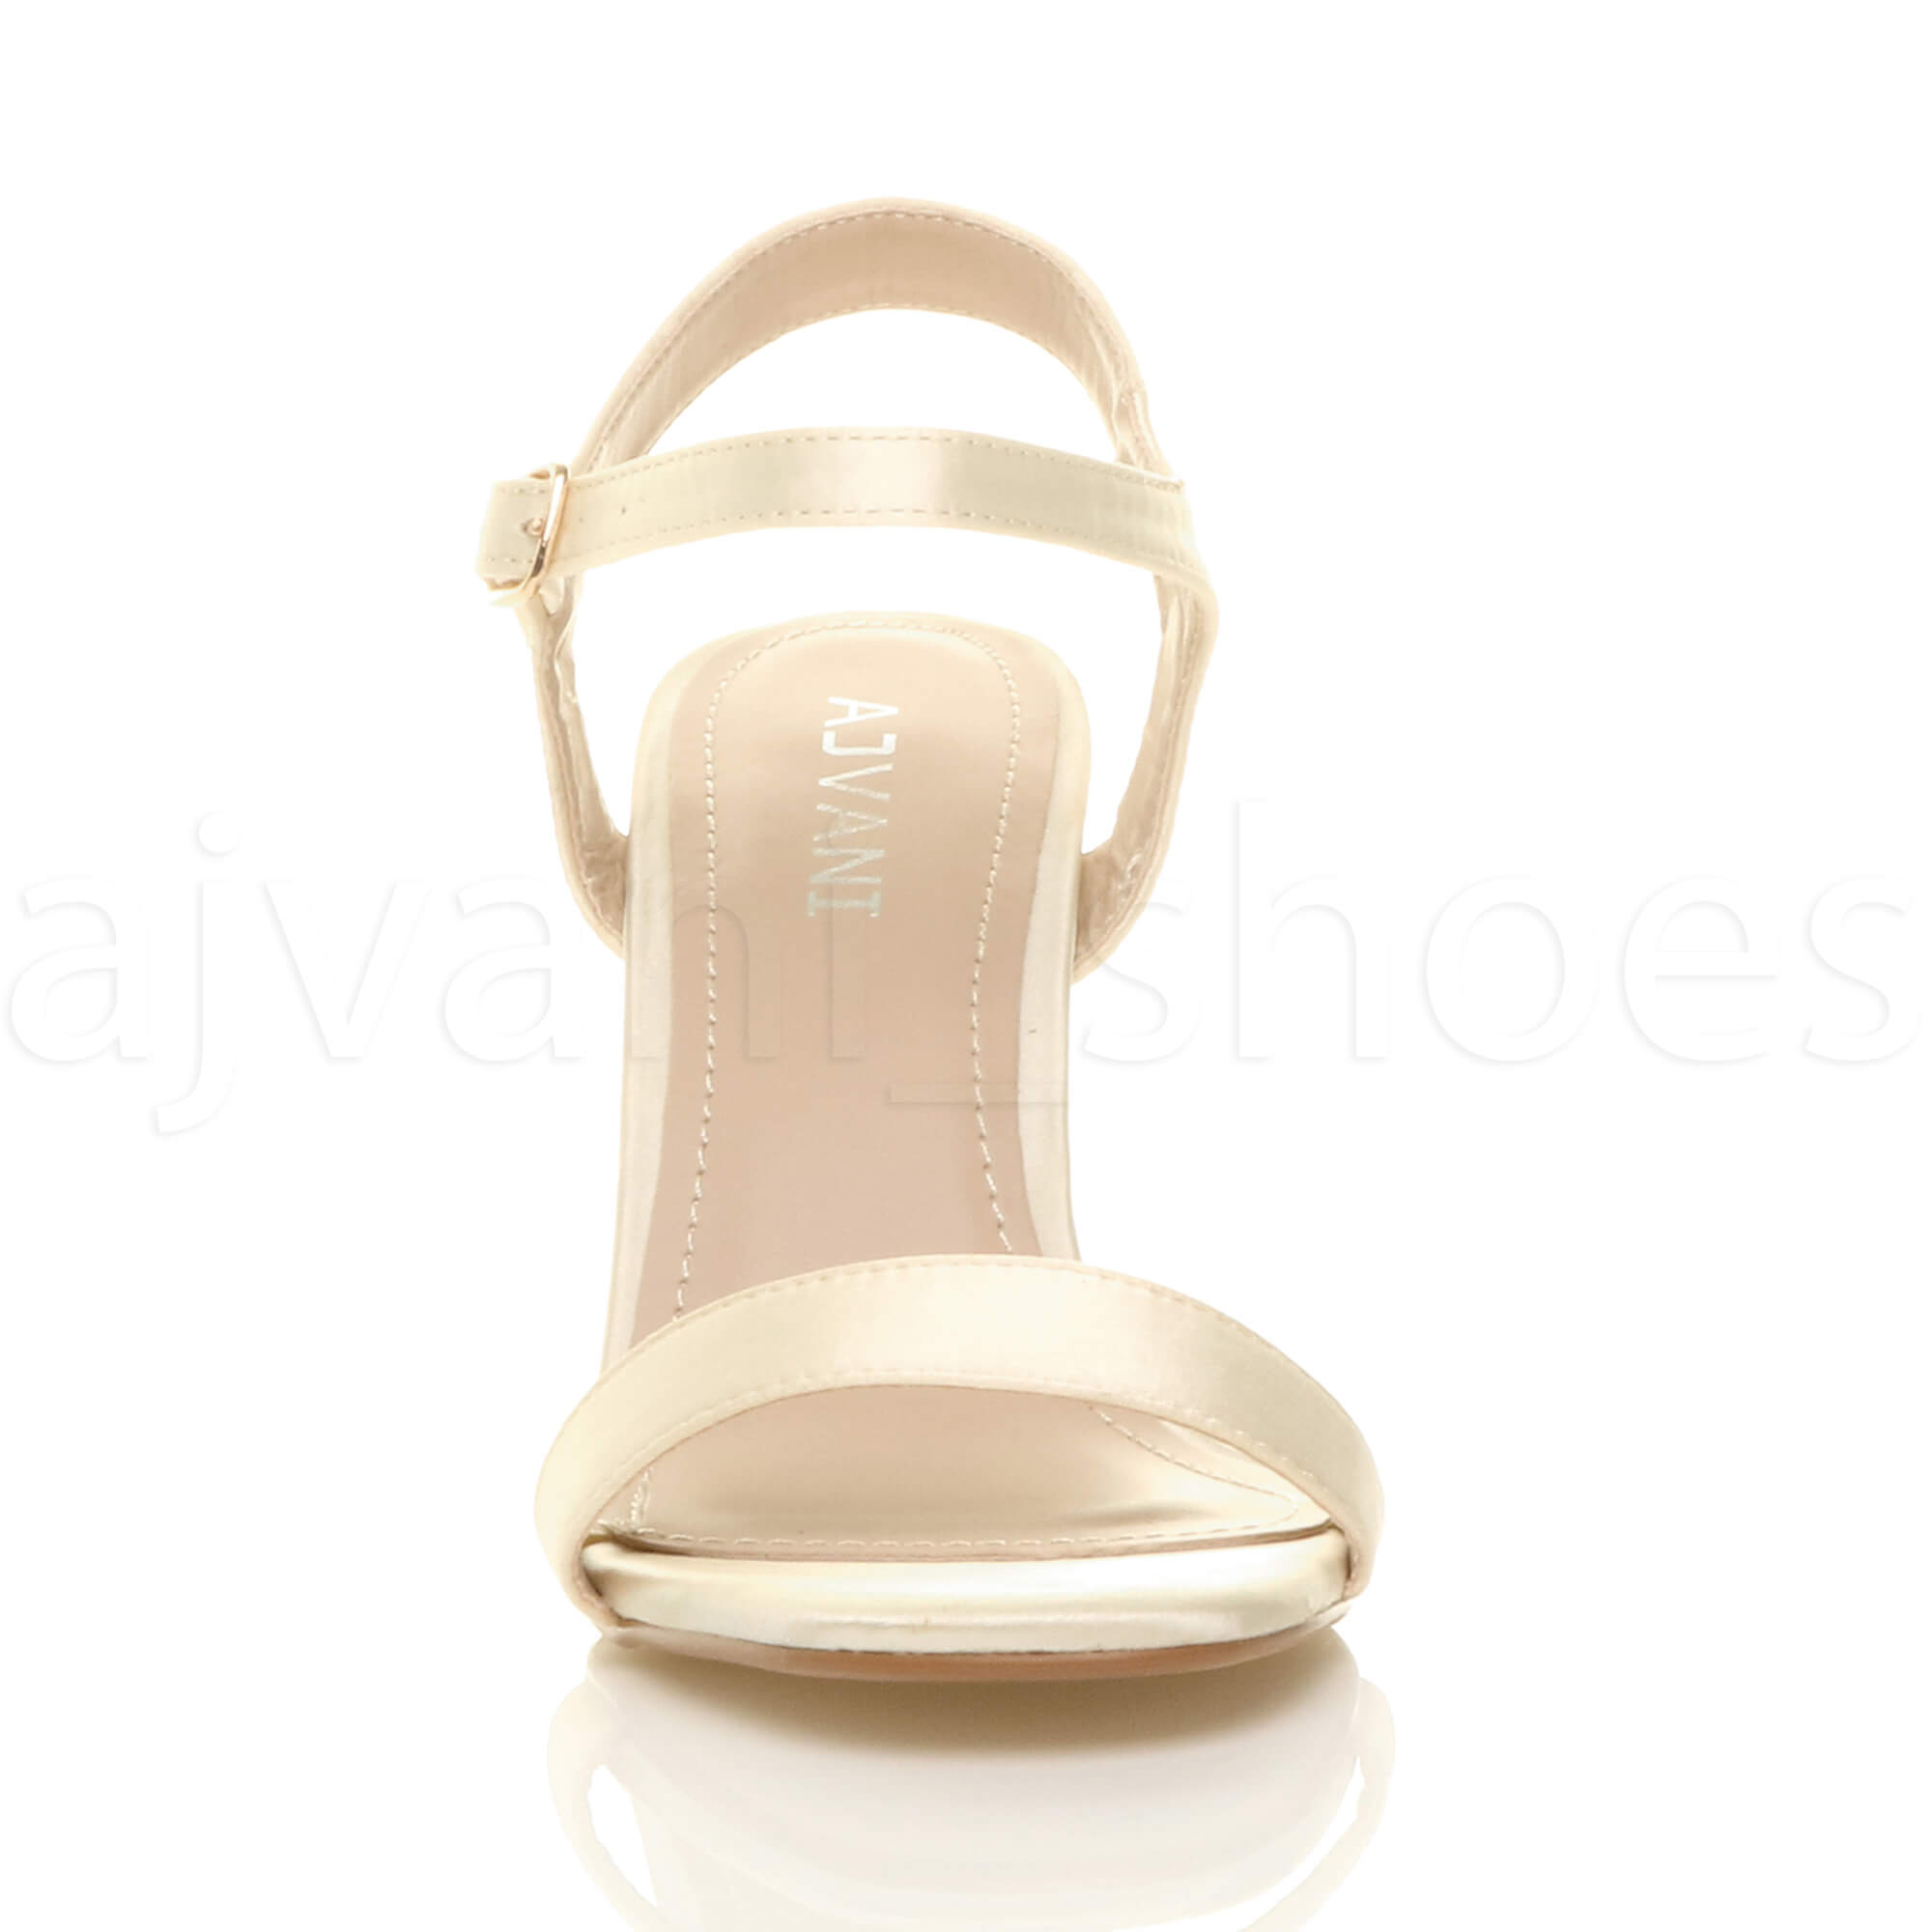 WOMENS-LADIES-HIGH-HEEL-BUCKLE-STRAPPY-BASIC-BARELY-THERE-SANDALS-SHOES-SIZE thumbnail 55